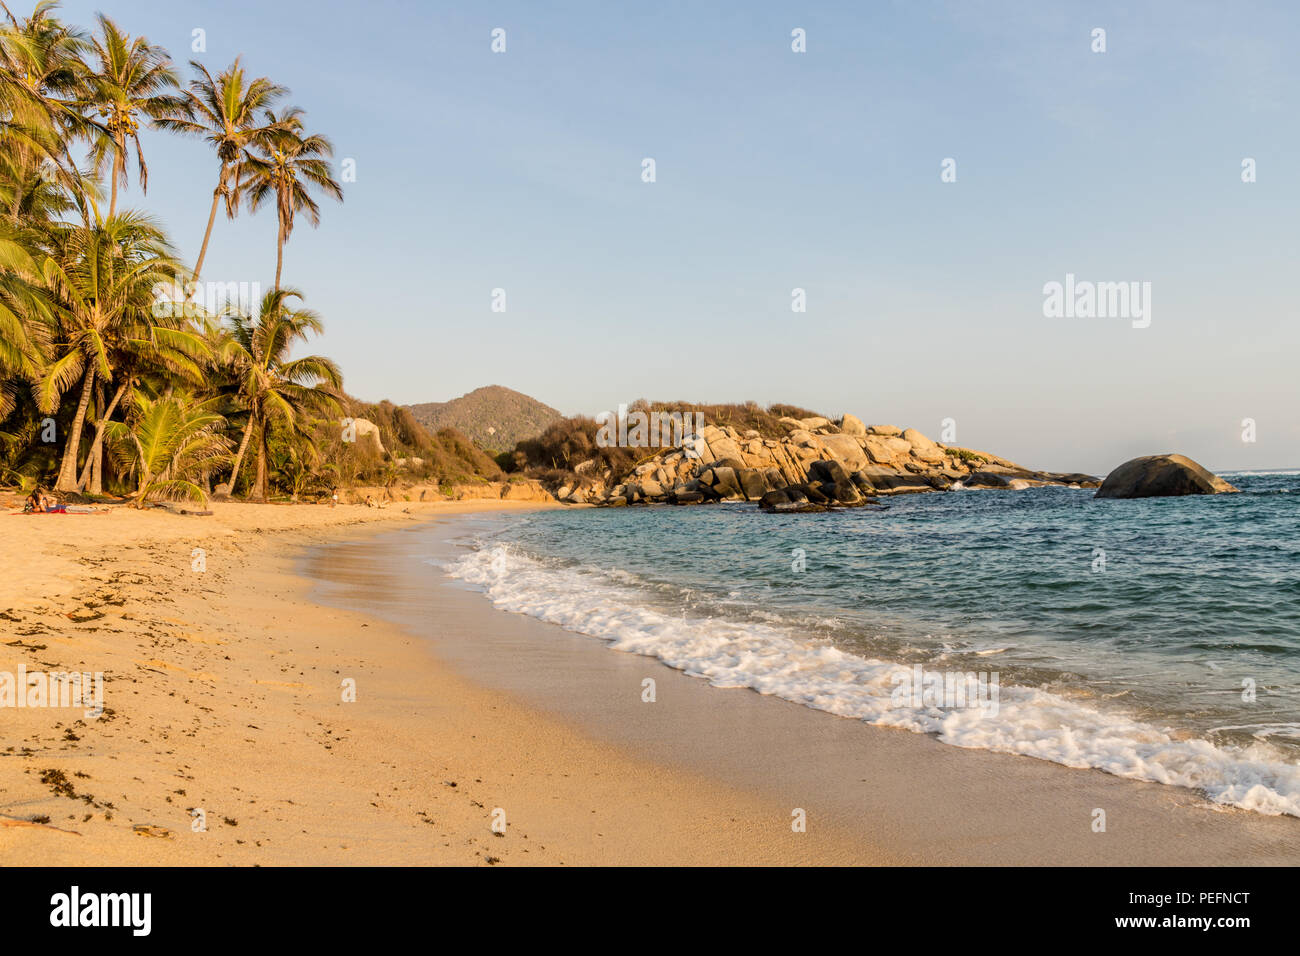 A typical view in Tayrona National Park Colombia - Stock Image